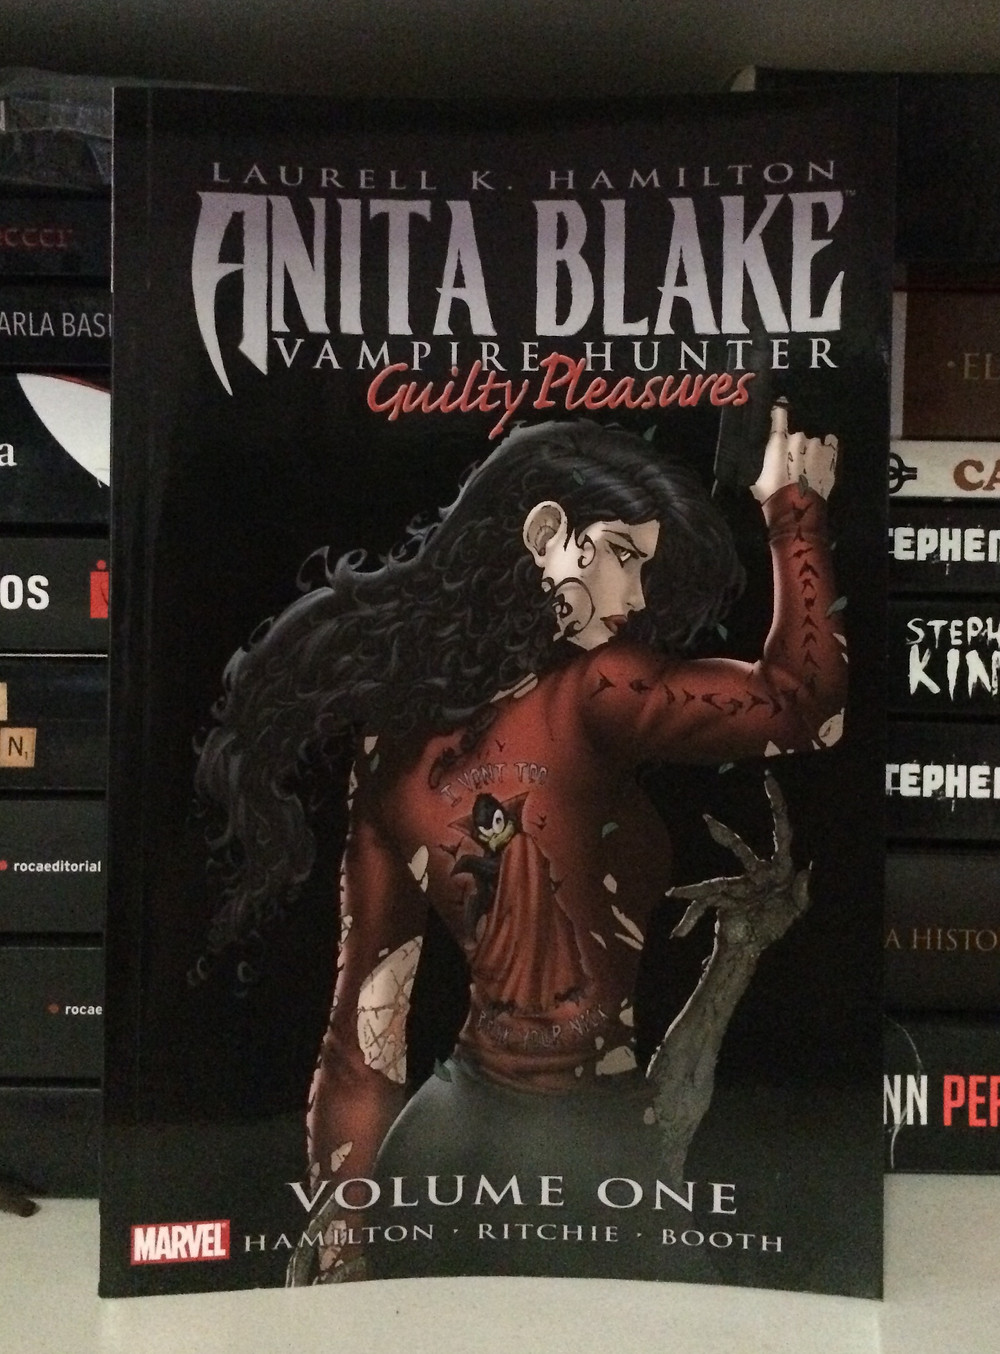 Anita Blake, Volume One. Editorial Marvel